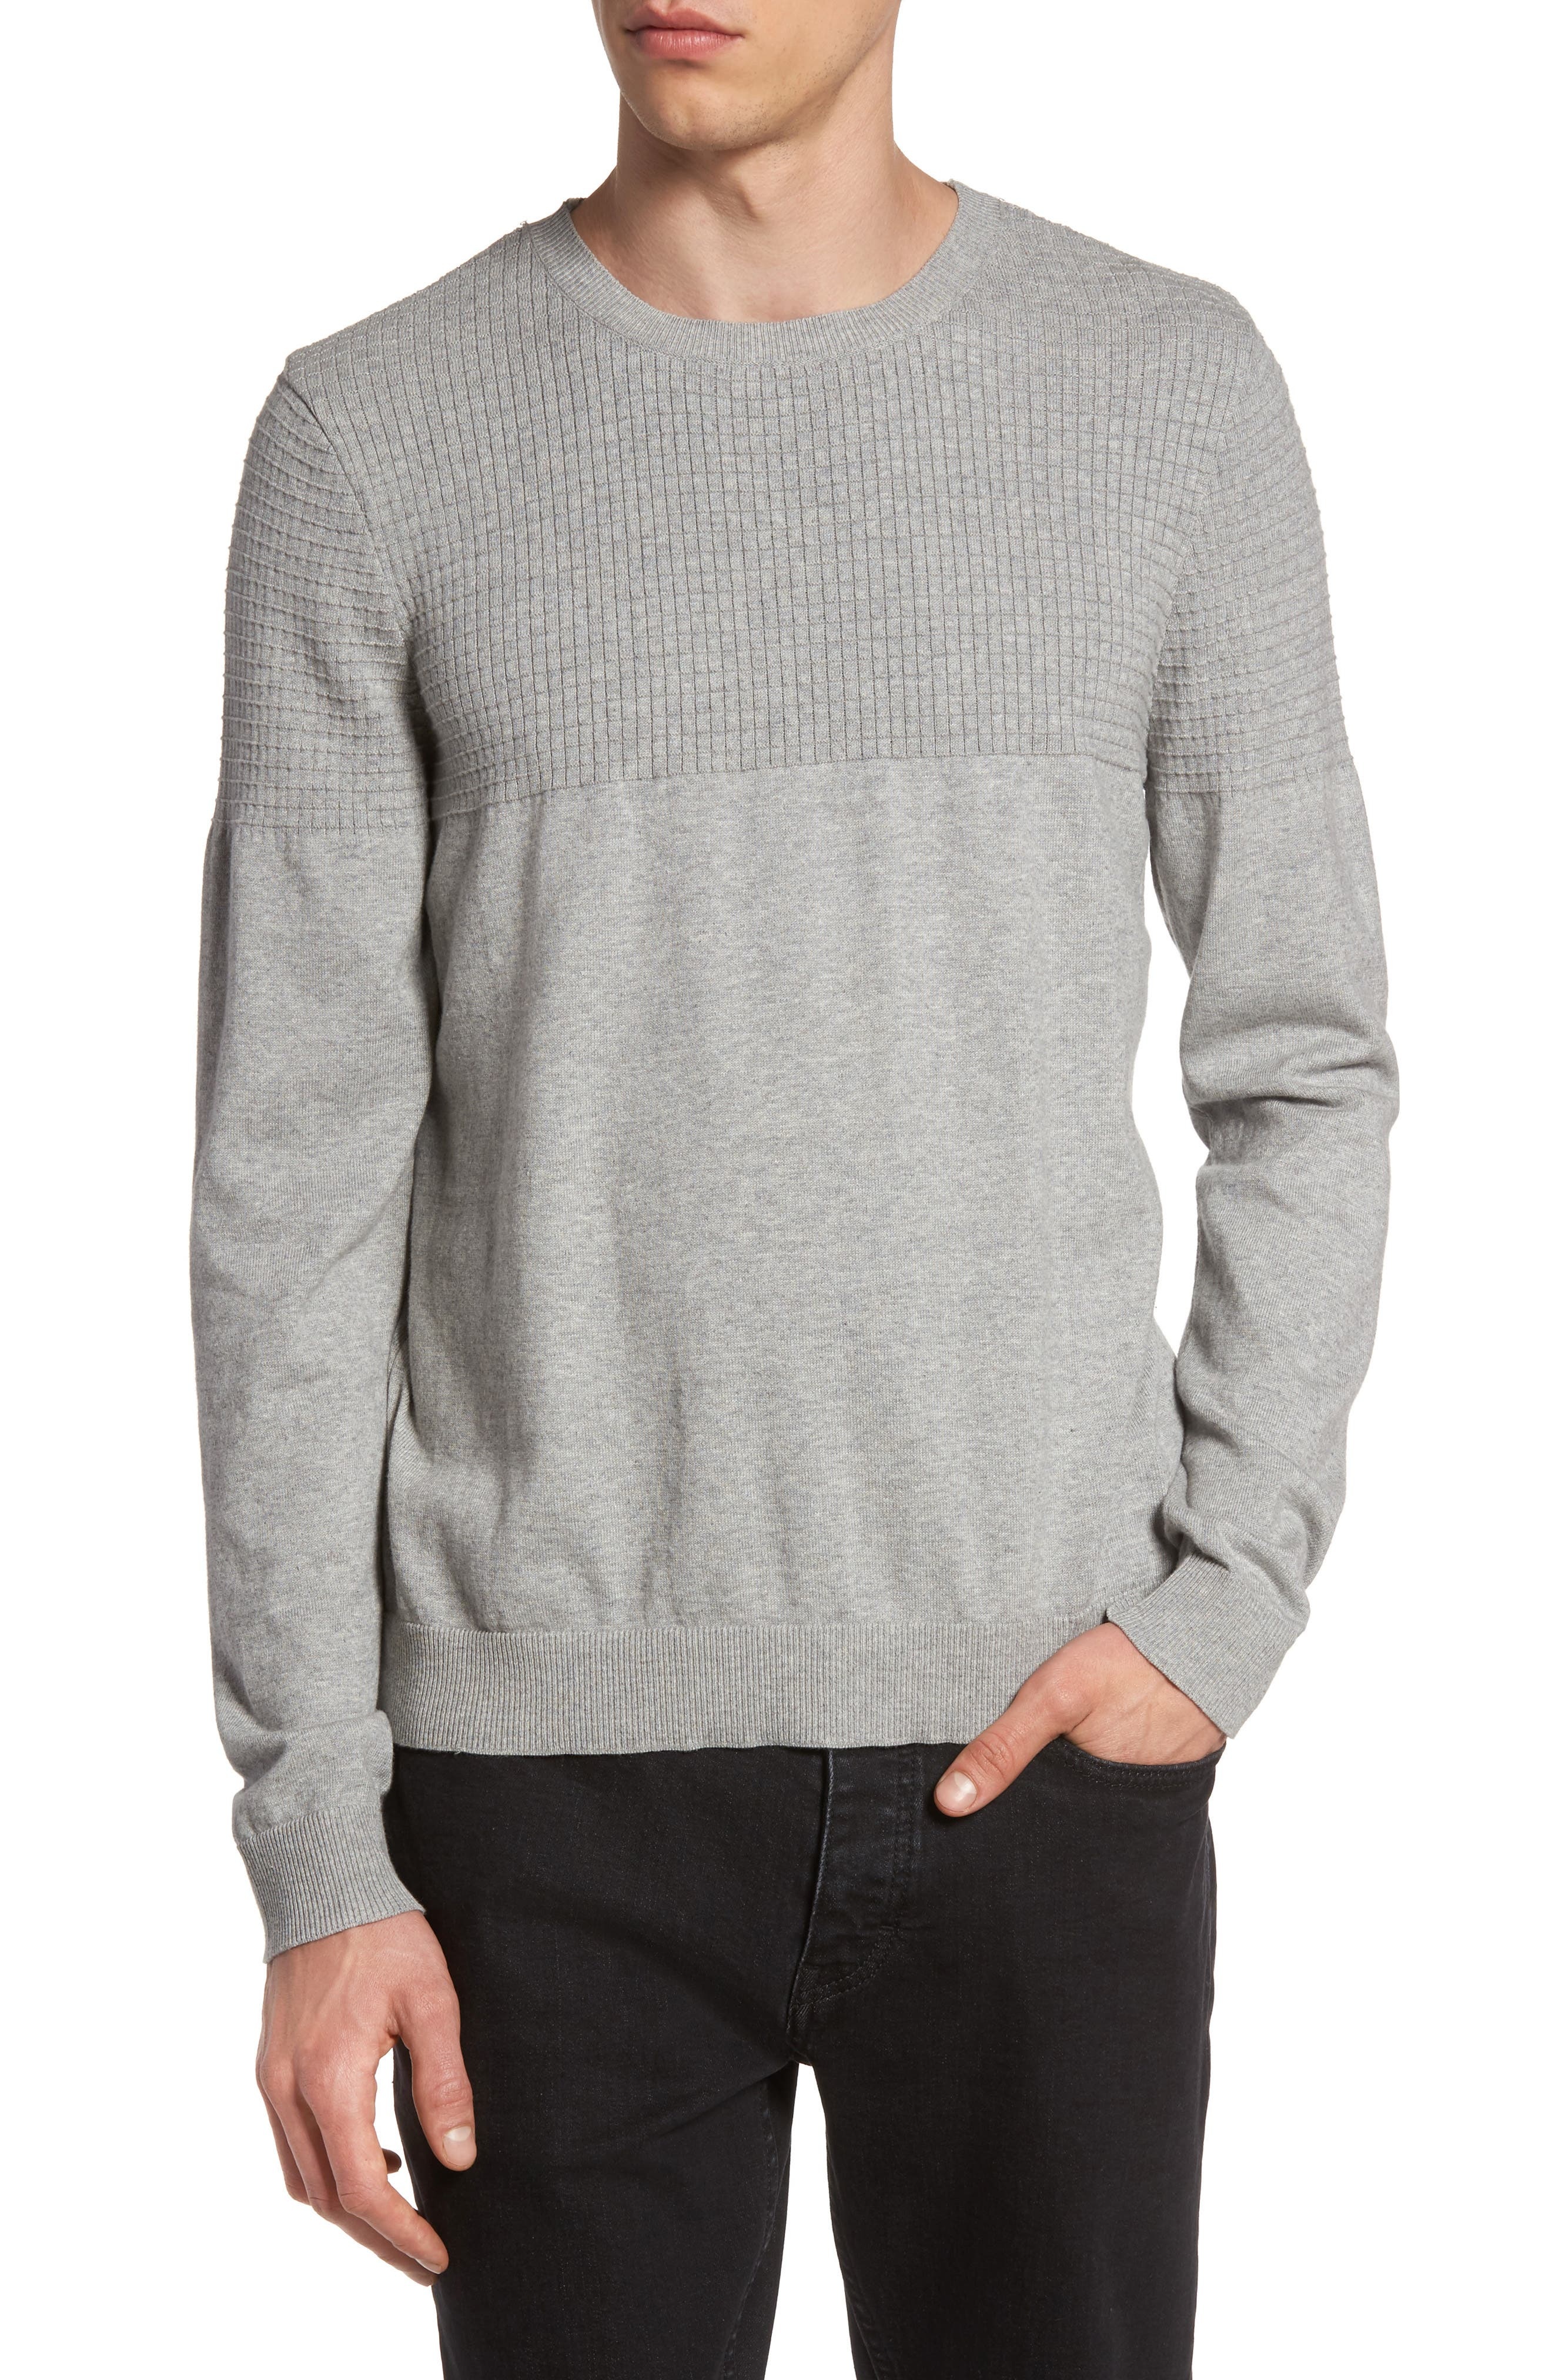 Topman Textured Sweater